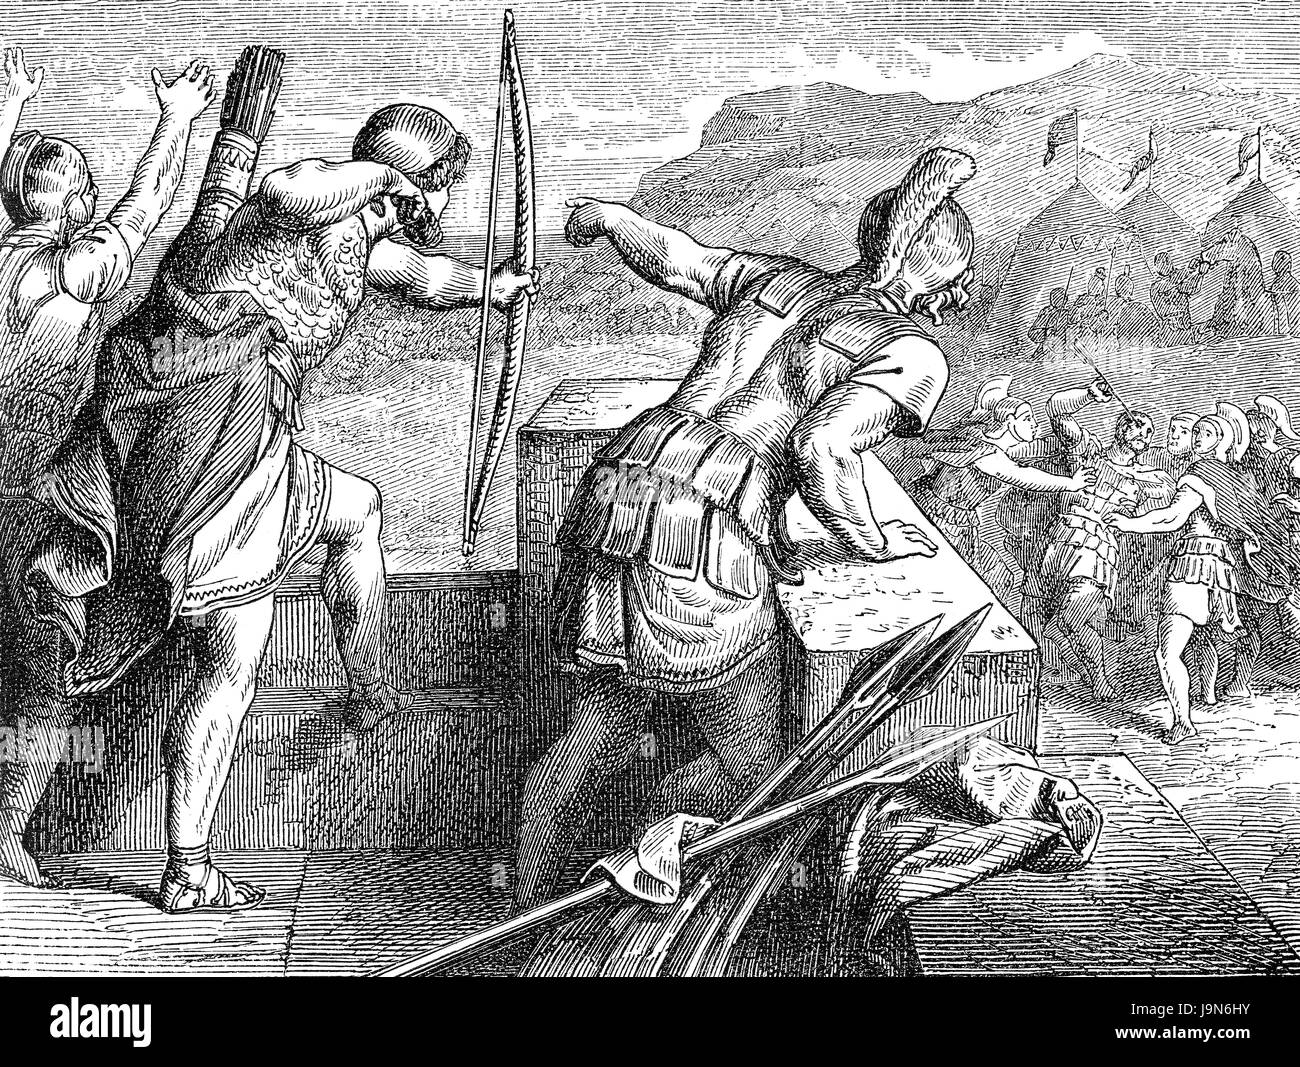 The city Methoni was besieged by the Macedonian King Philip II in 355/354 BC who lost his eye with an arrow - Stock Image